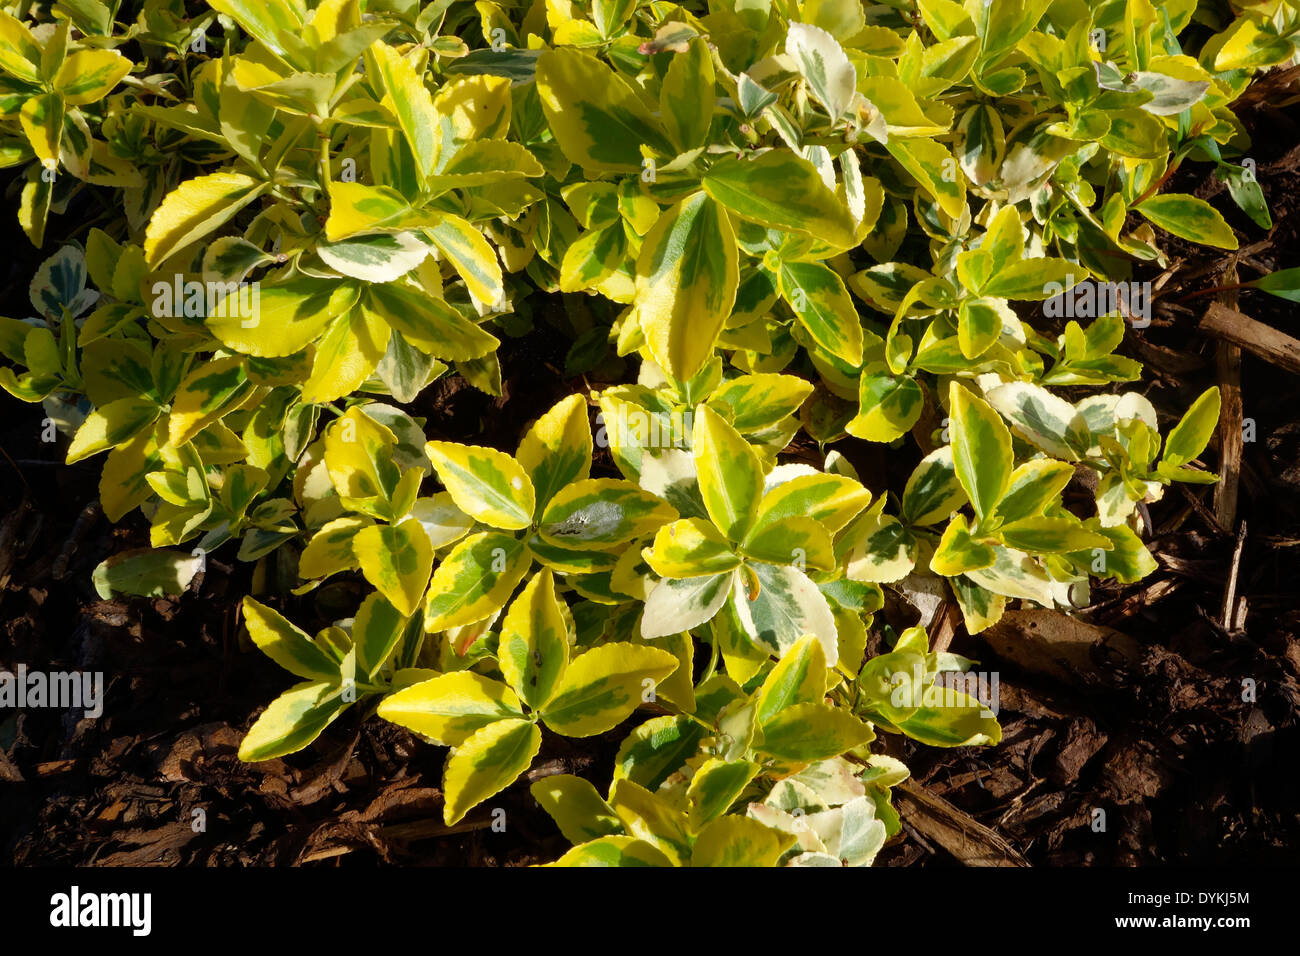 Euonymus fortunei cultivar 'Emerald 'n' Gold' - Stock Image